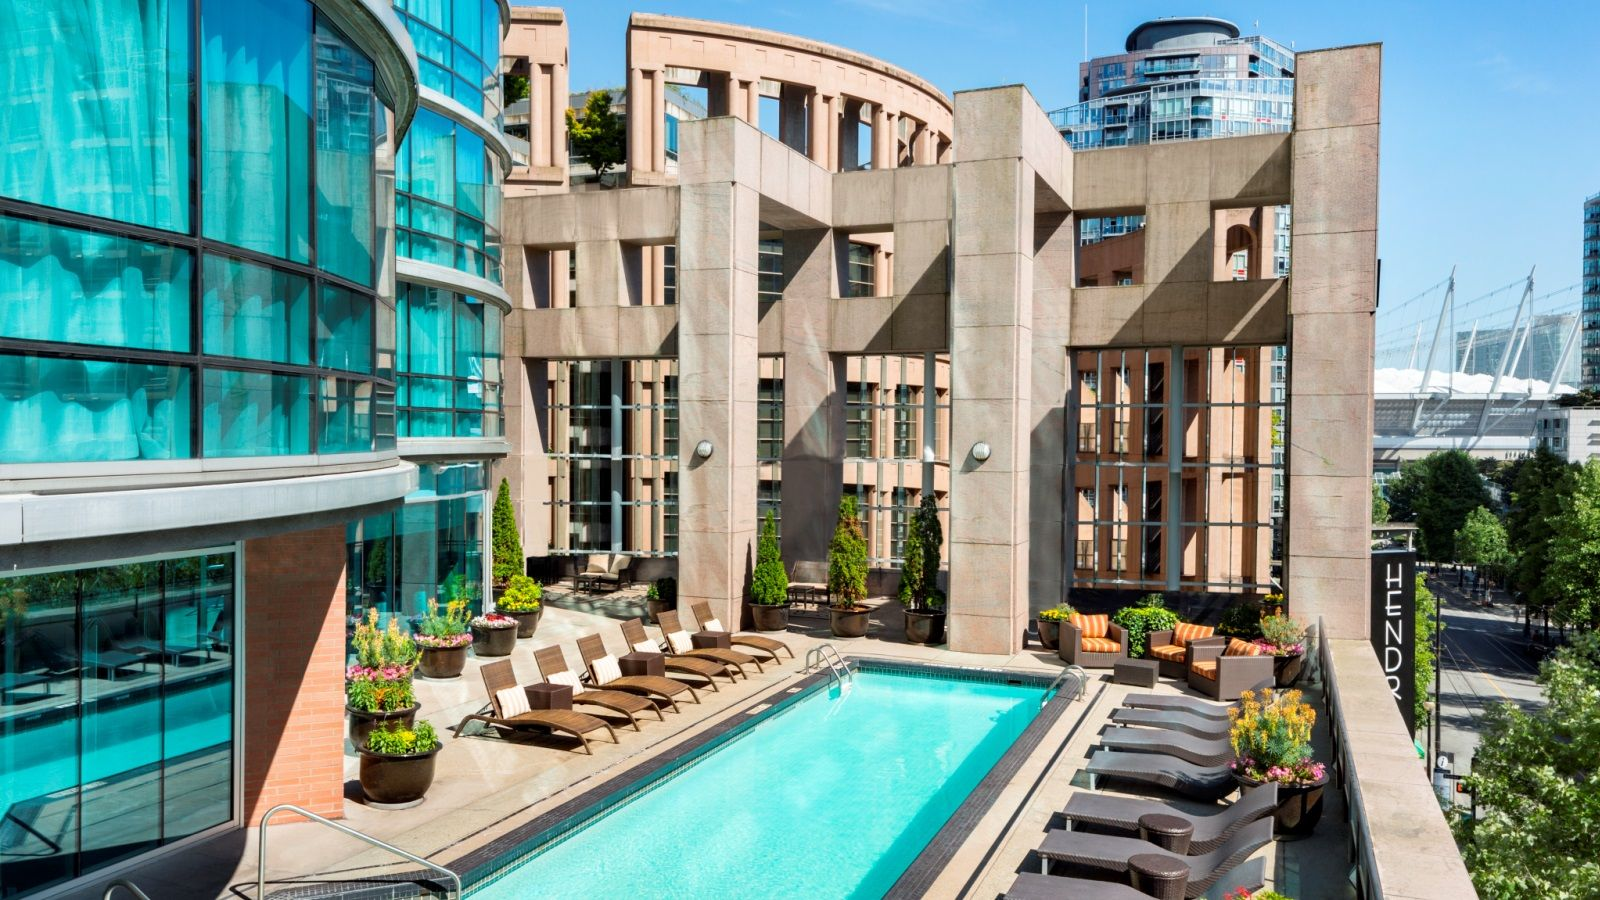 Heated Outdoor Pool on Rooftop of The Westin Grand, Vancouver